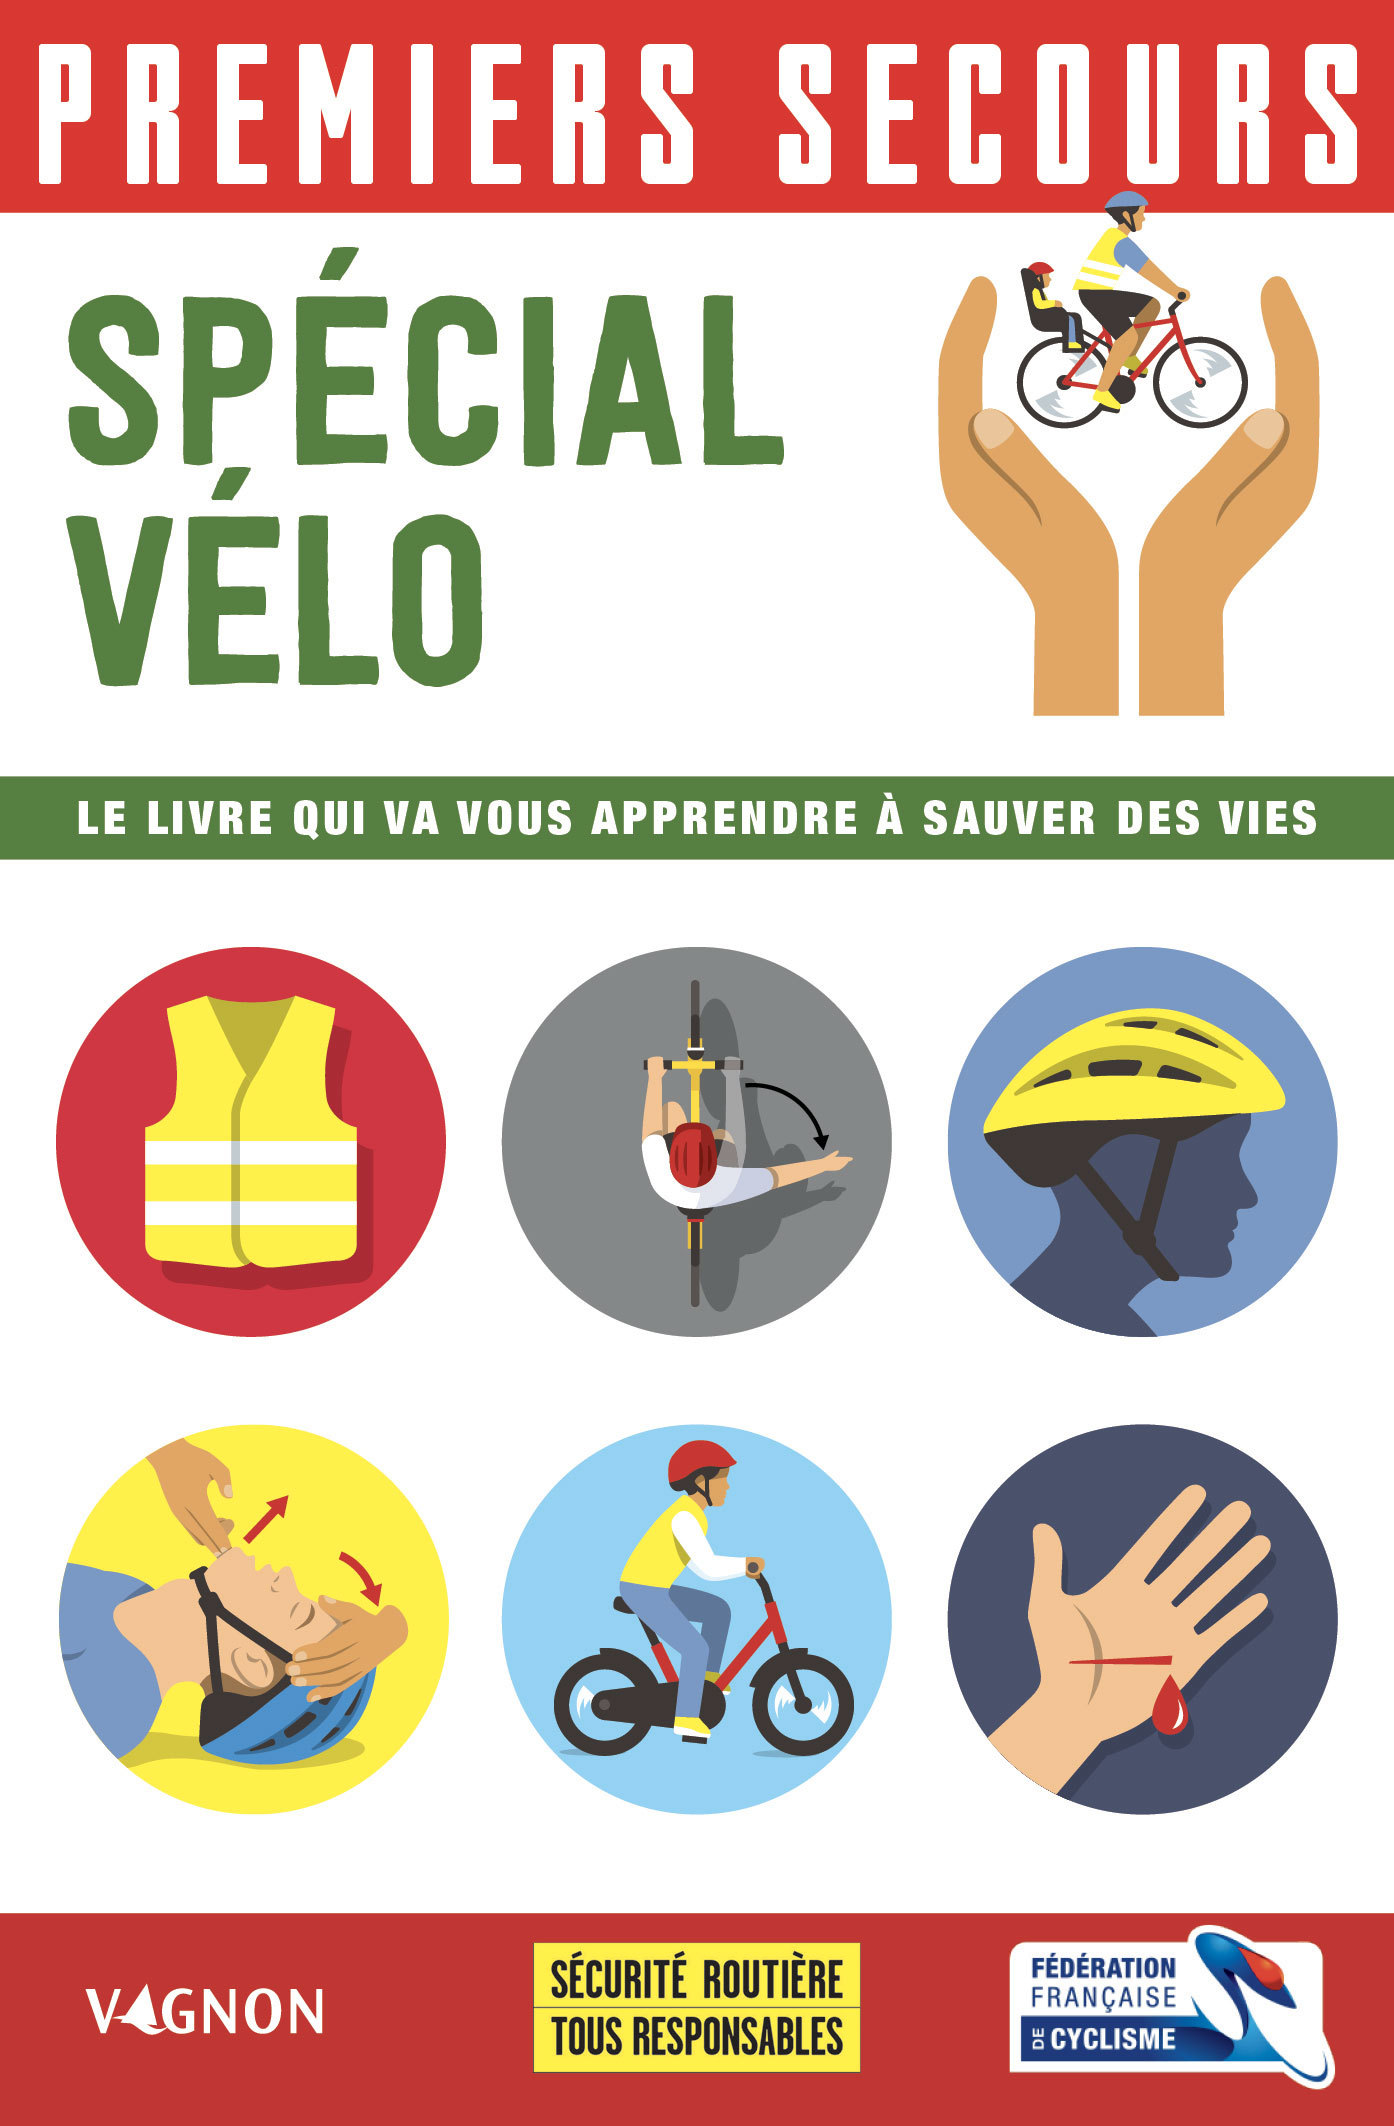 PREMIERS SECOURS SPECIAL VELO